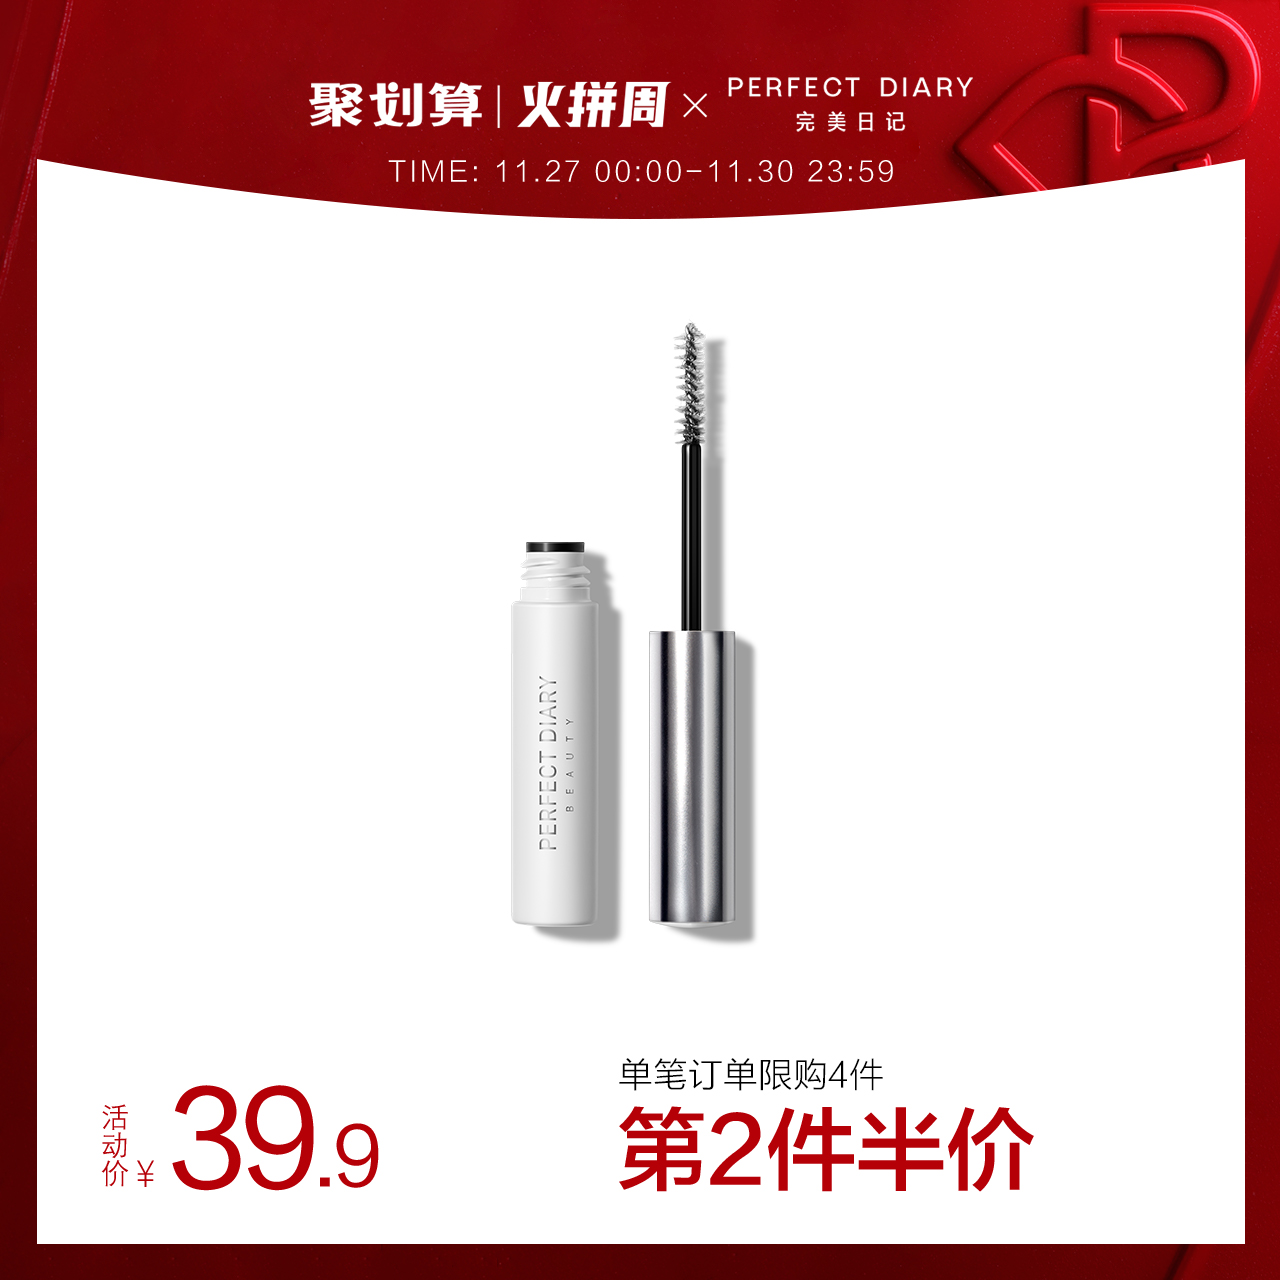 Perfect Diary mascara stereotype bottom mascara female waterproof long curly raincoat does not faint